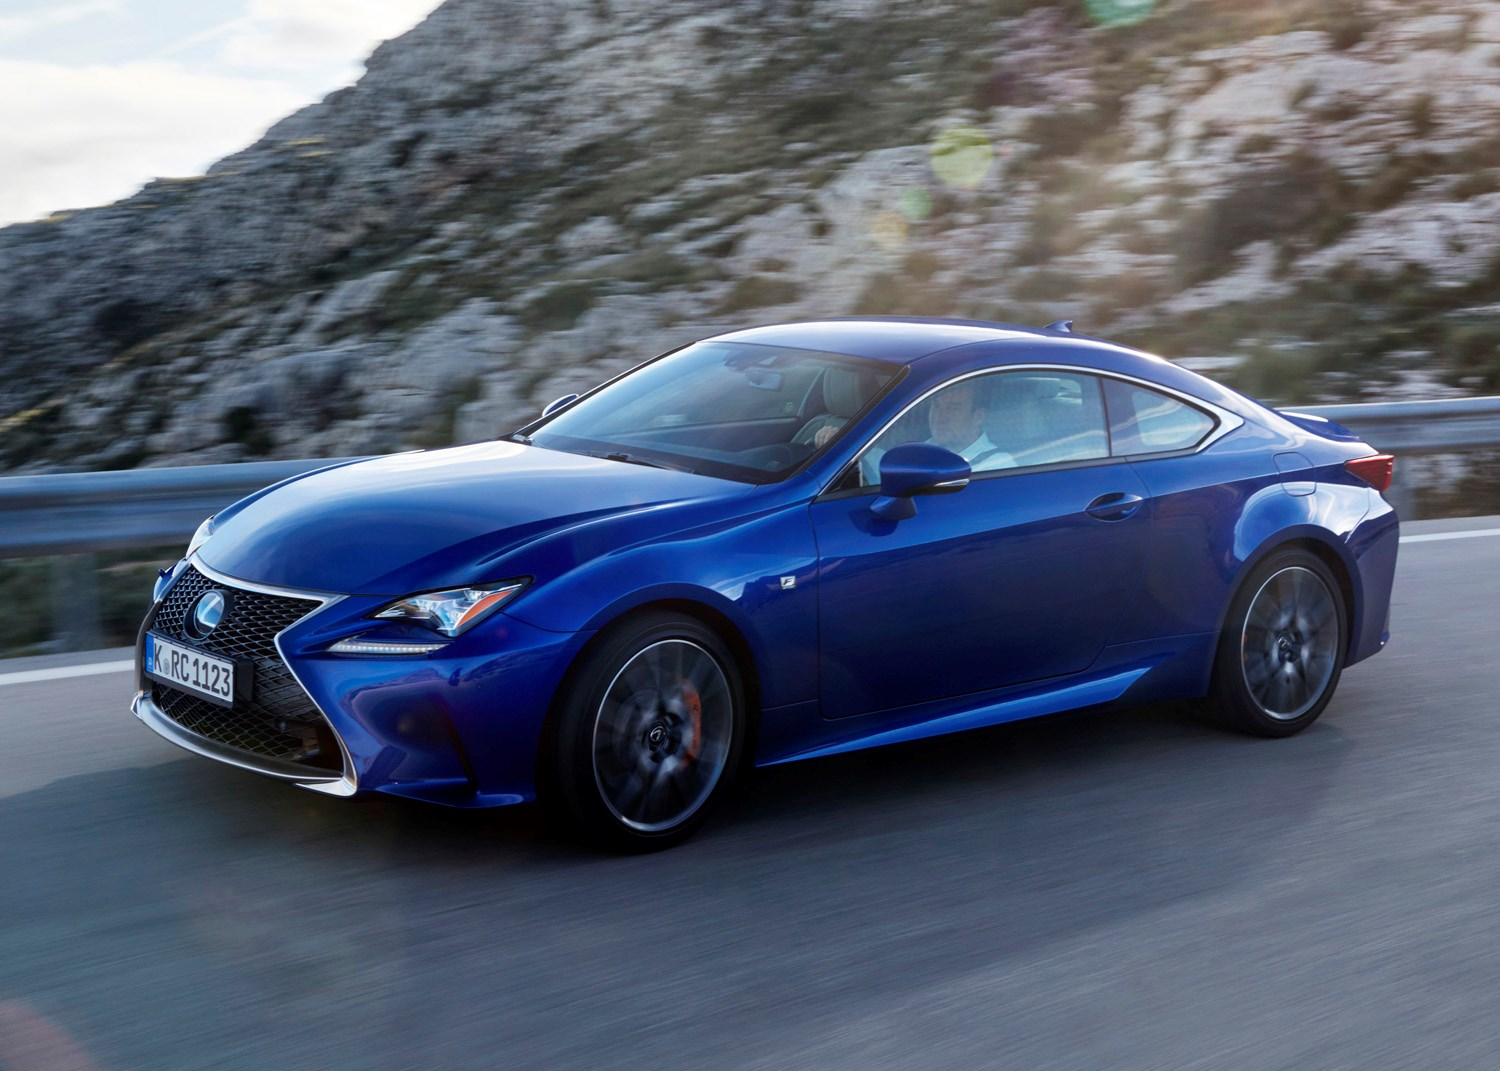 Moving Company Reviews >> Lexus RC Coupe Review (2015 - ) | Parkers